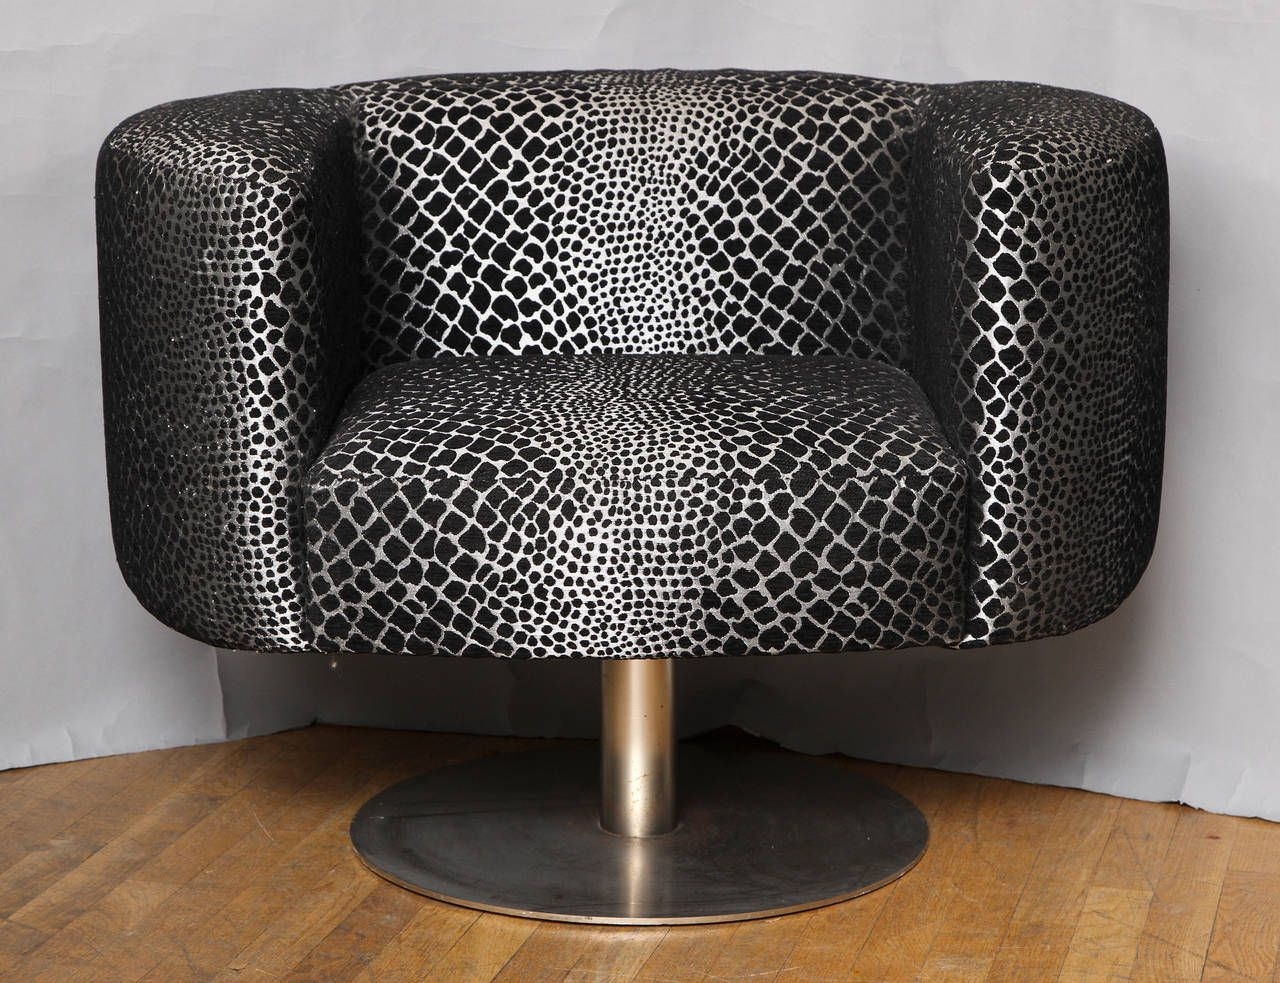 Milo Baughman Swivel Armchair | From a unique collection of antique and modern armchairs at https://www.1stdibs.com/furniture/seating/armchairs/